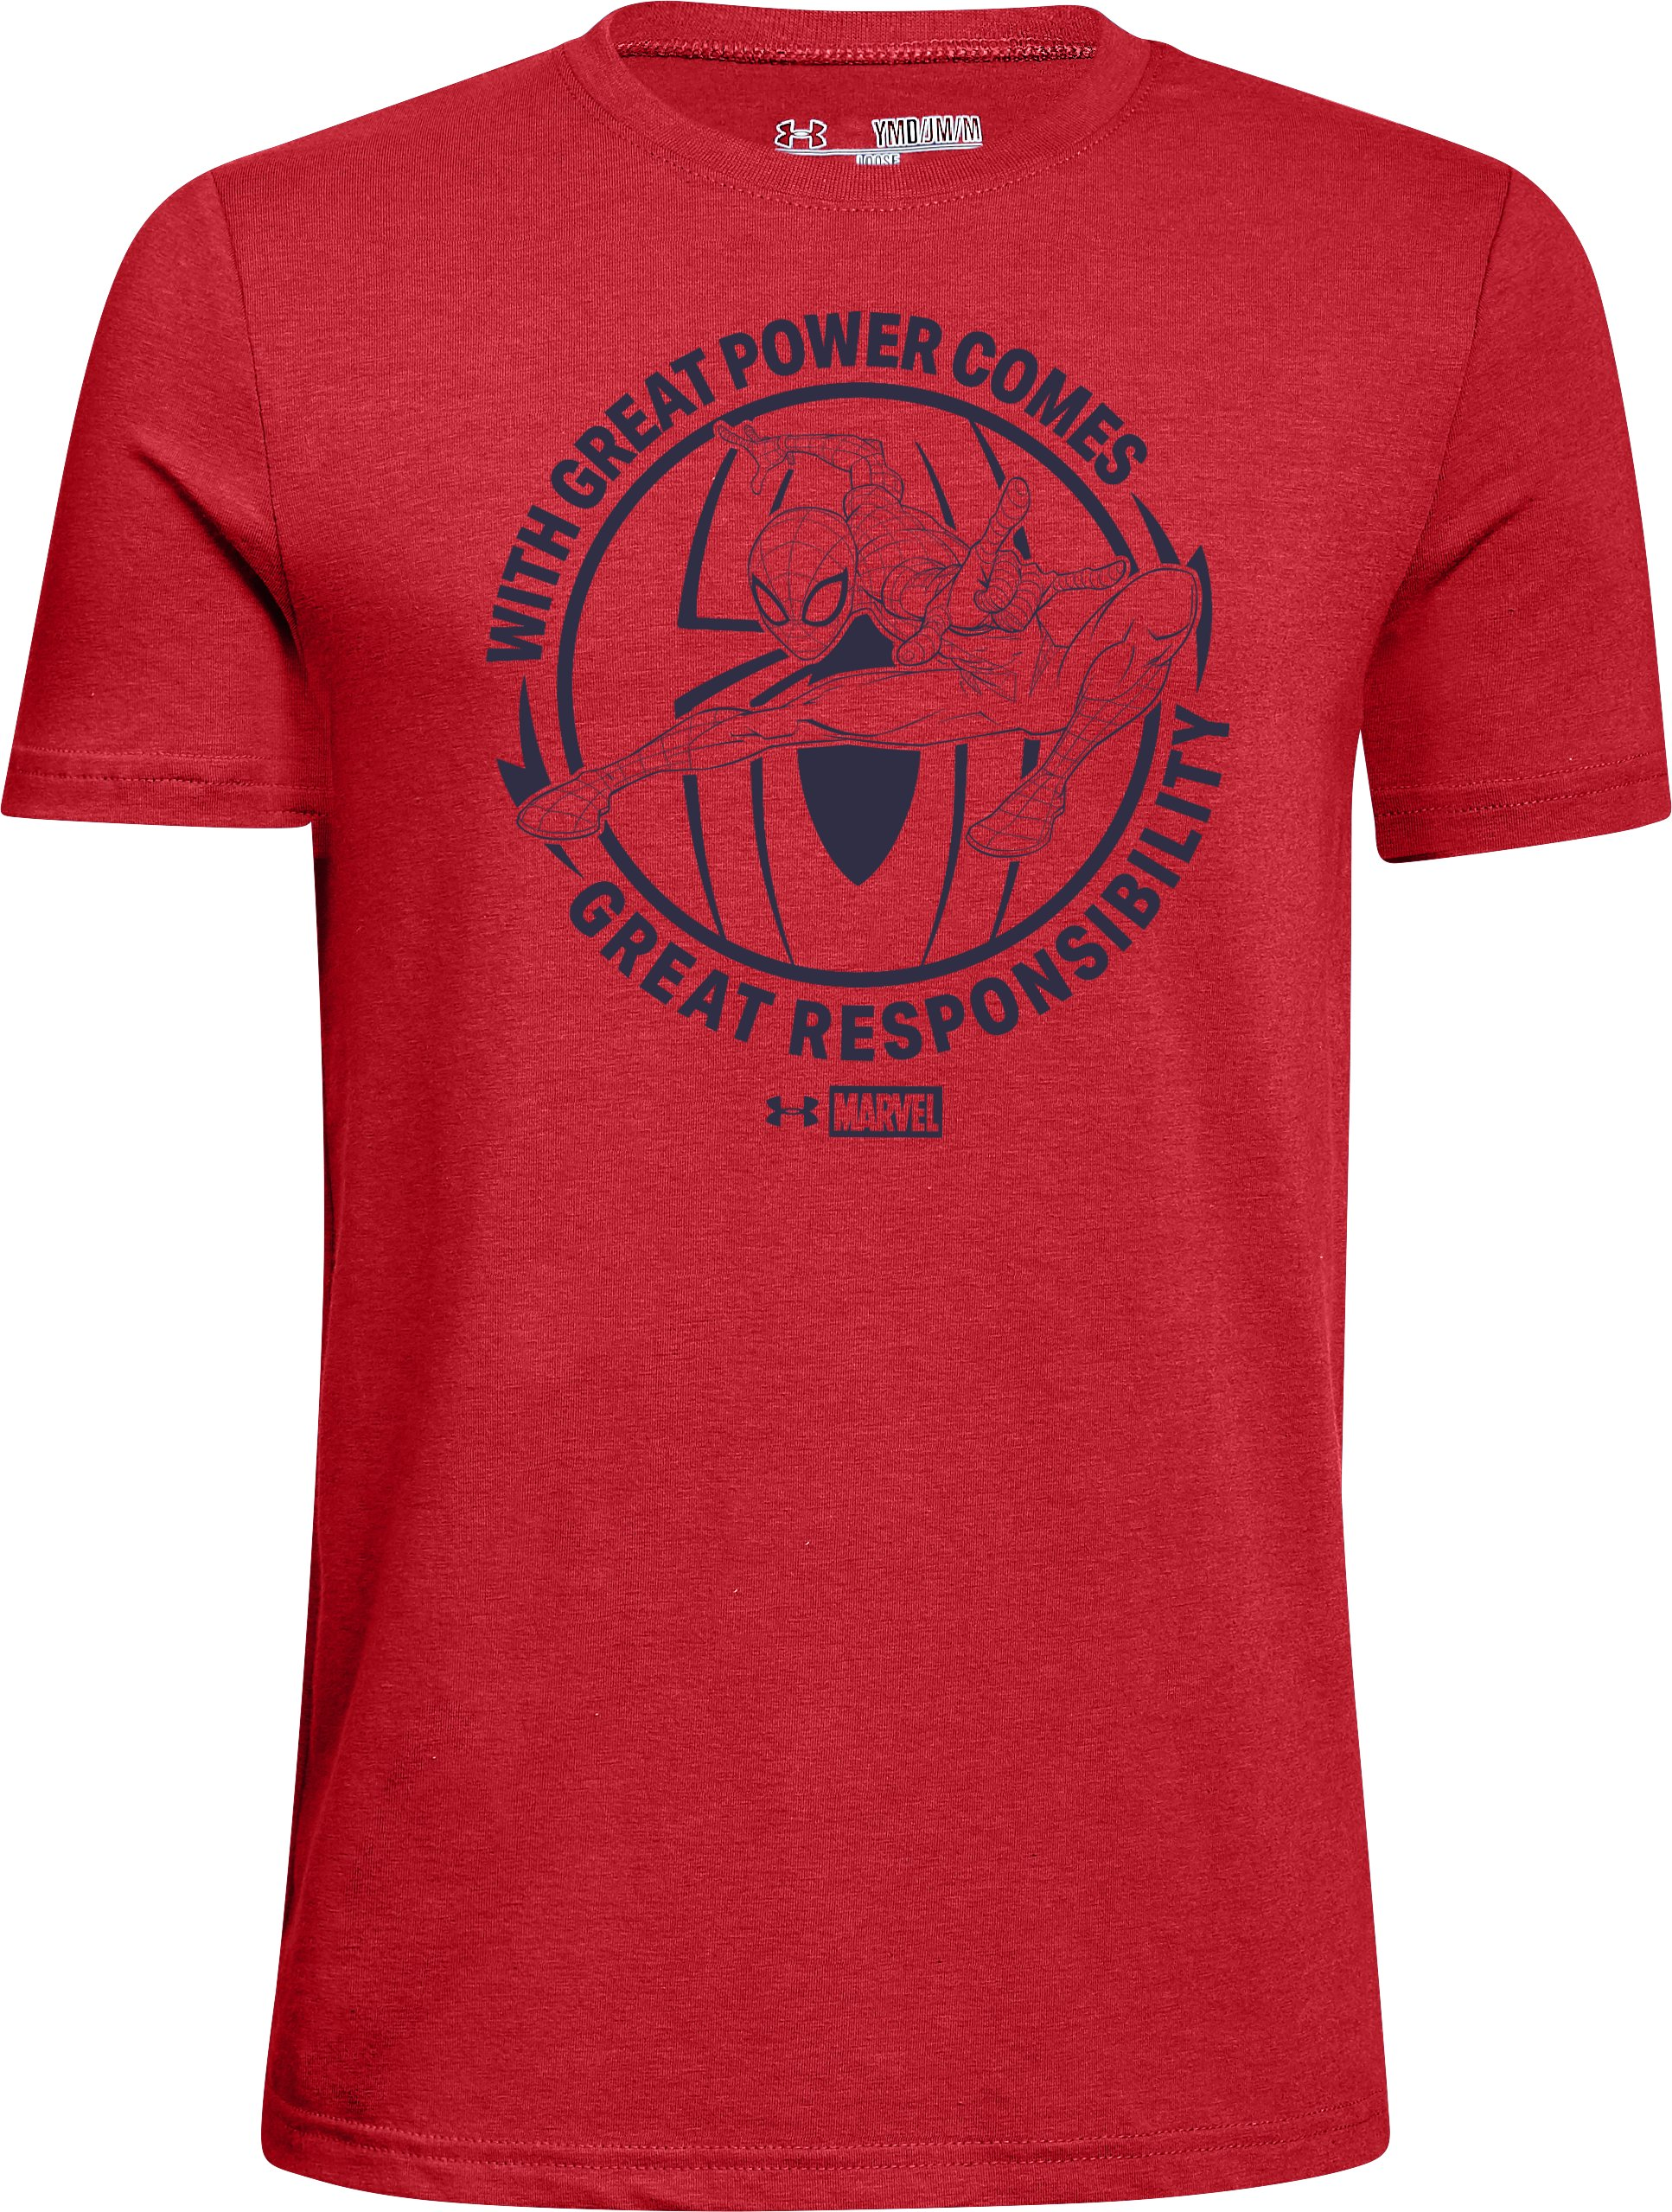 Boys' UA Spiderman Great Power T-Shirt, Red